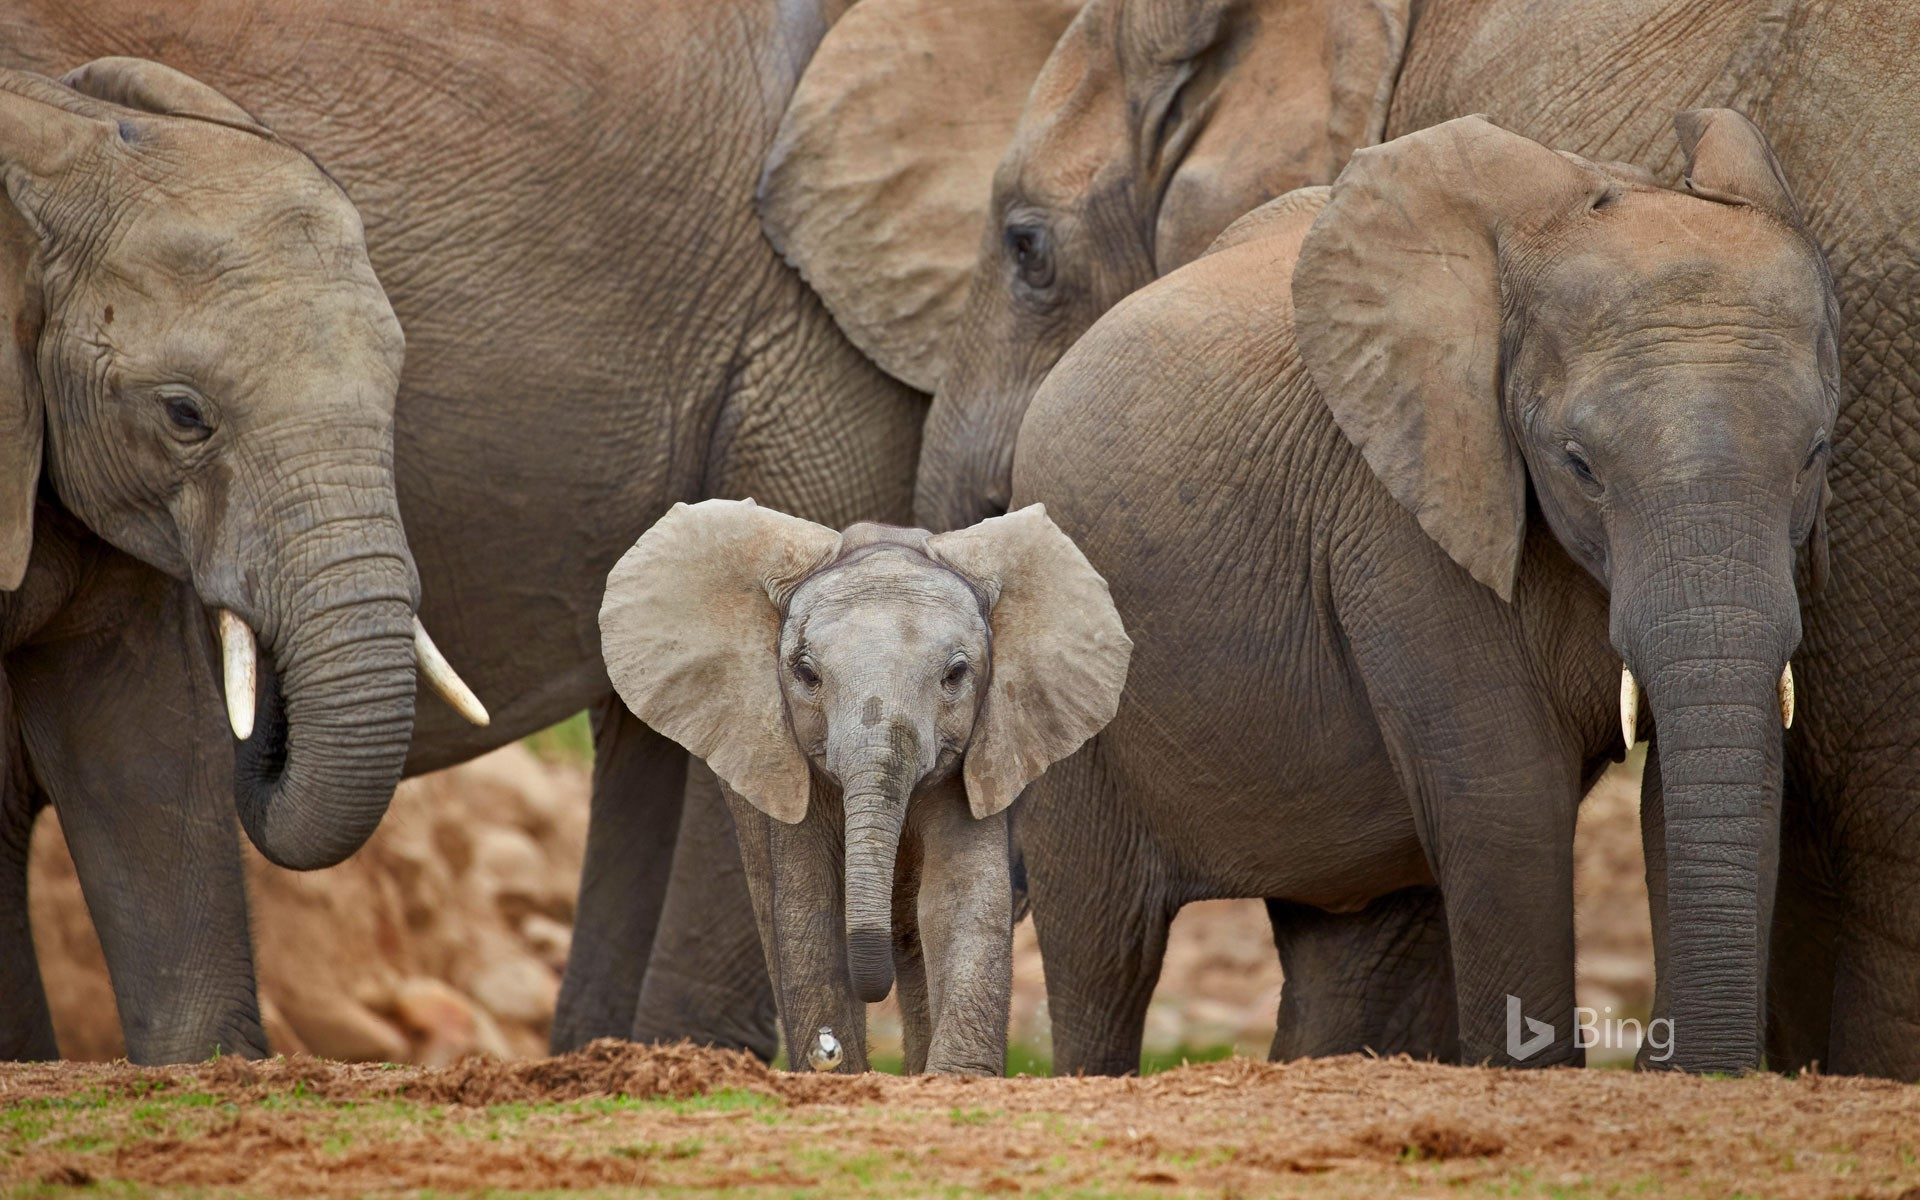 African elephants in Addo Elephant National Park, South Africa